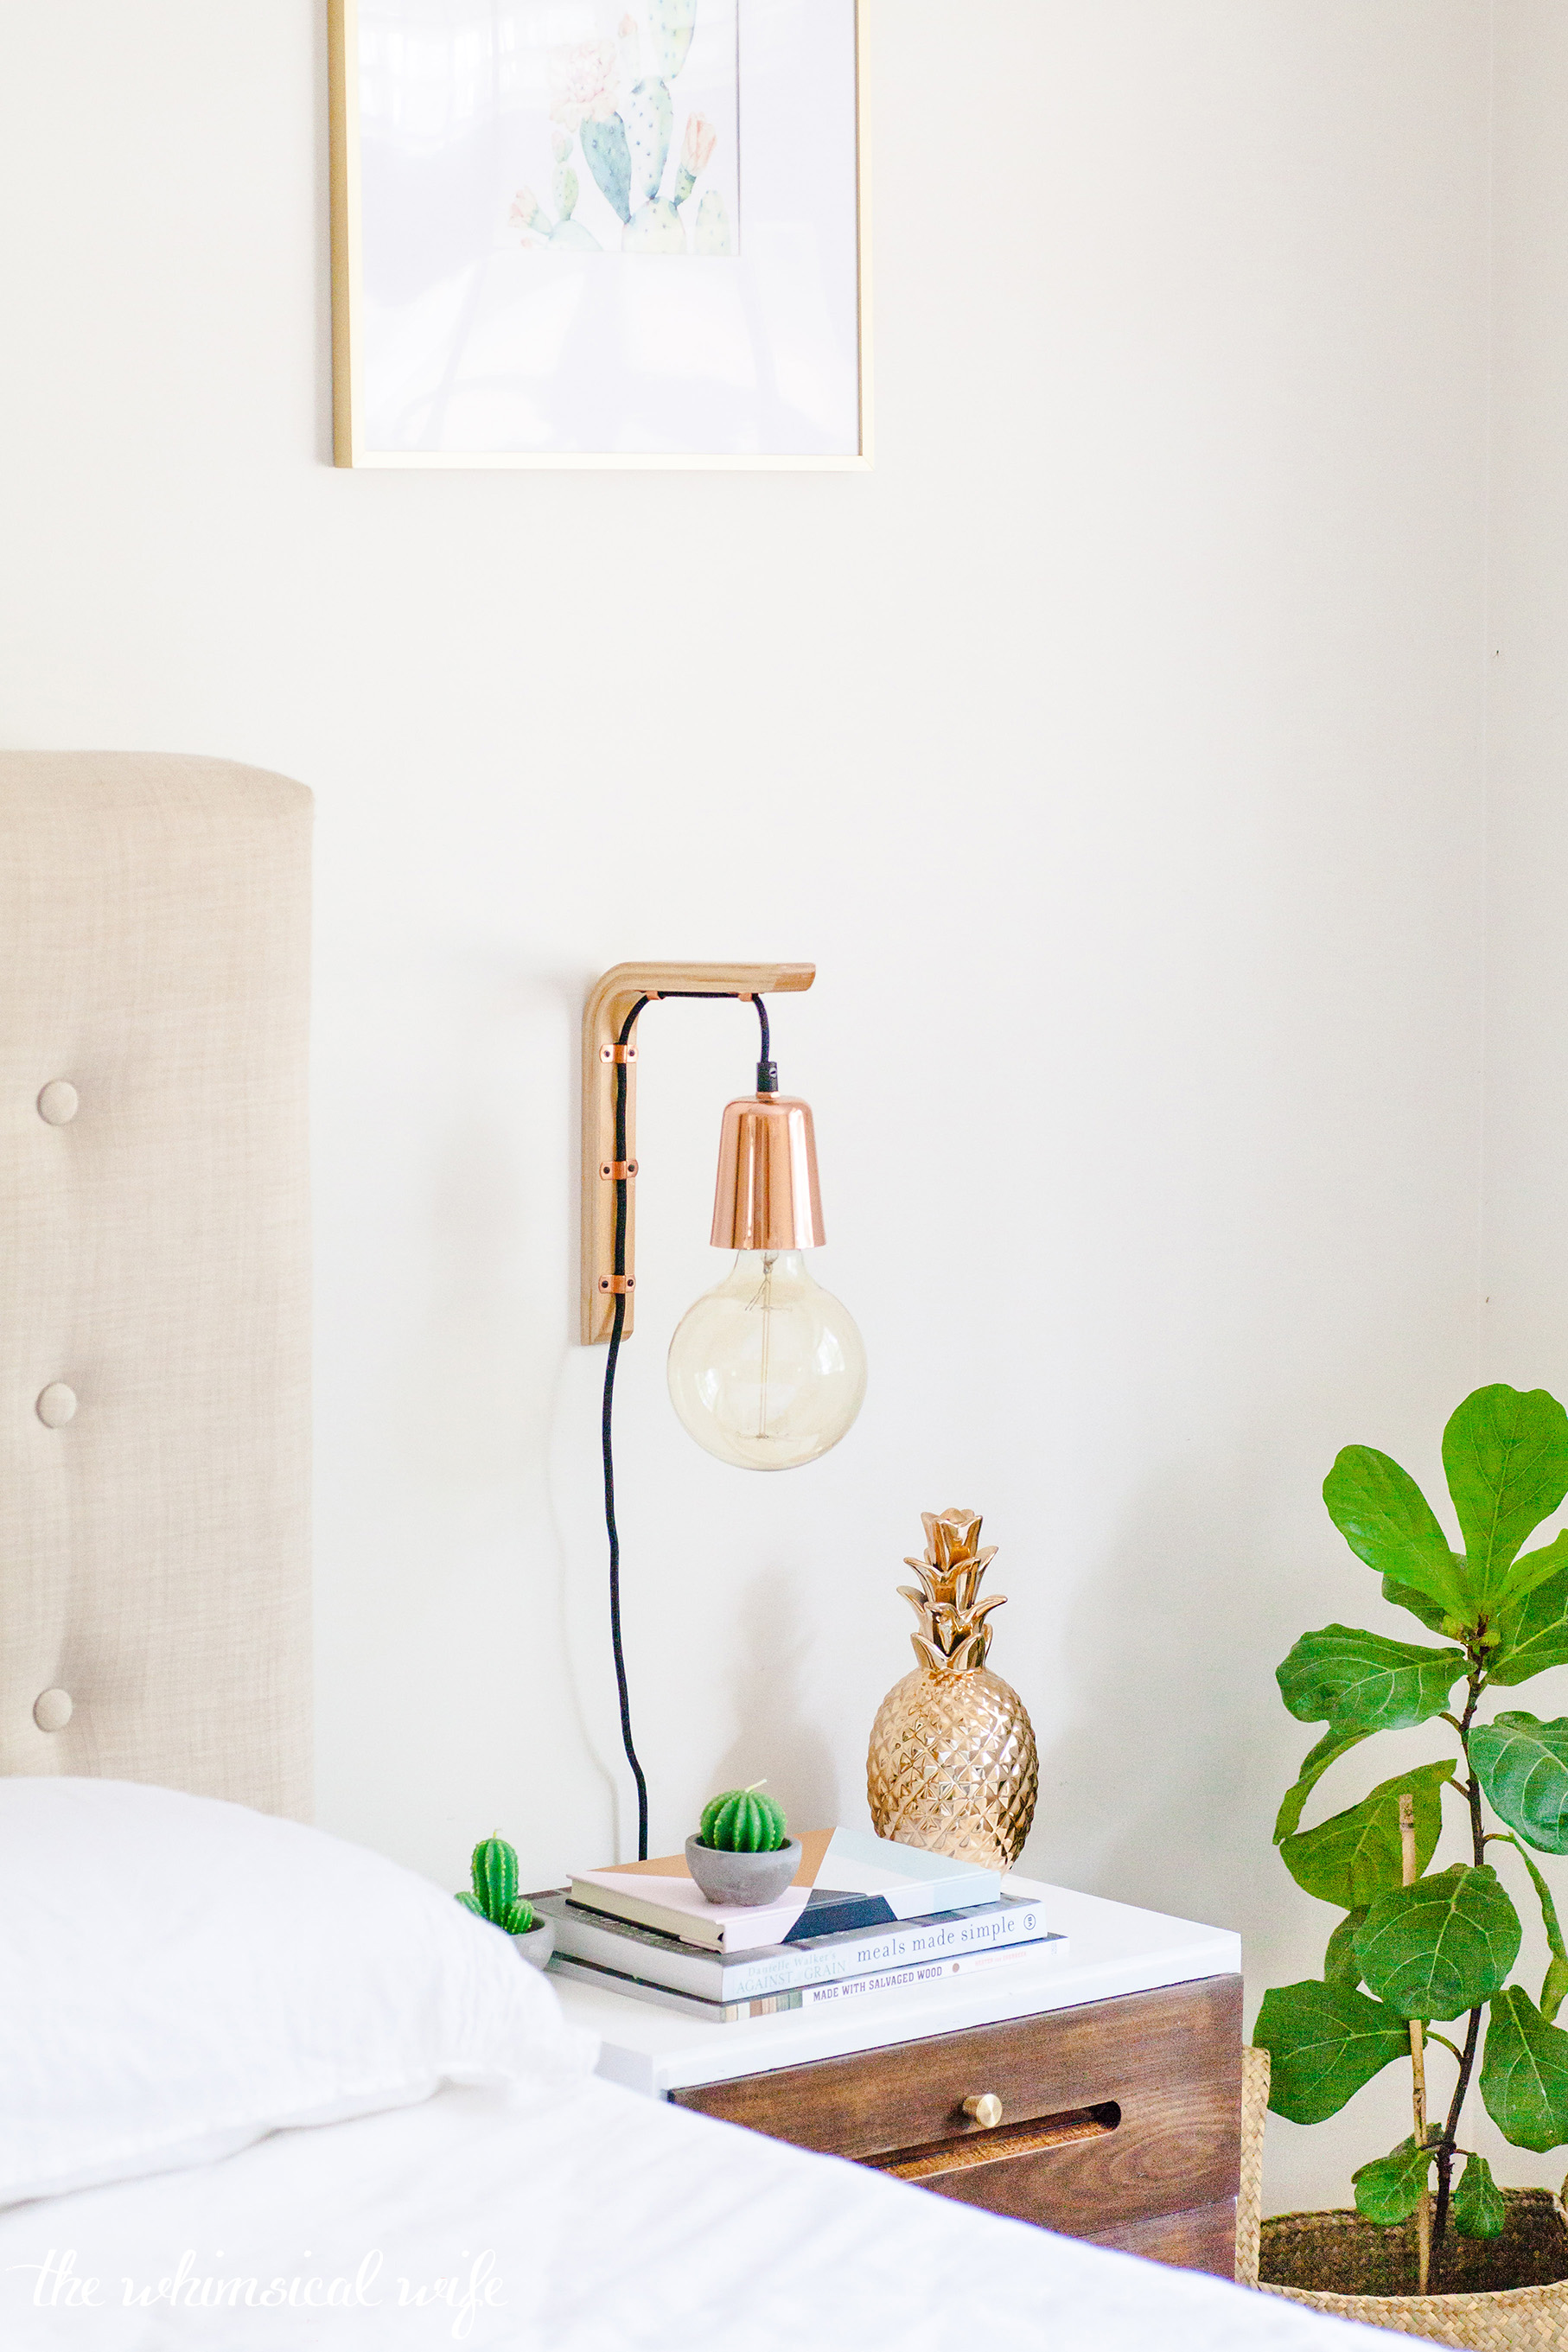 How To Make A Modern Hanging Wooden Wall Bracket Light The